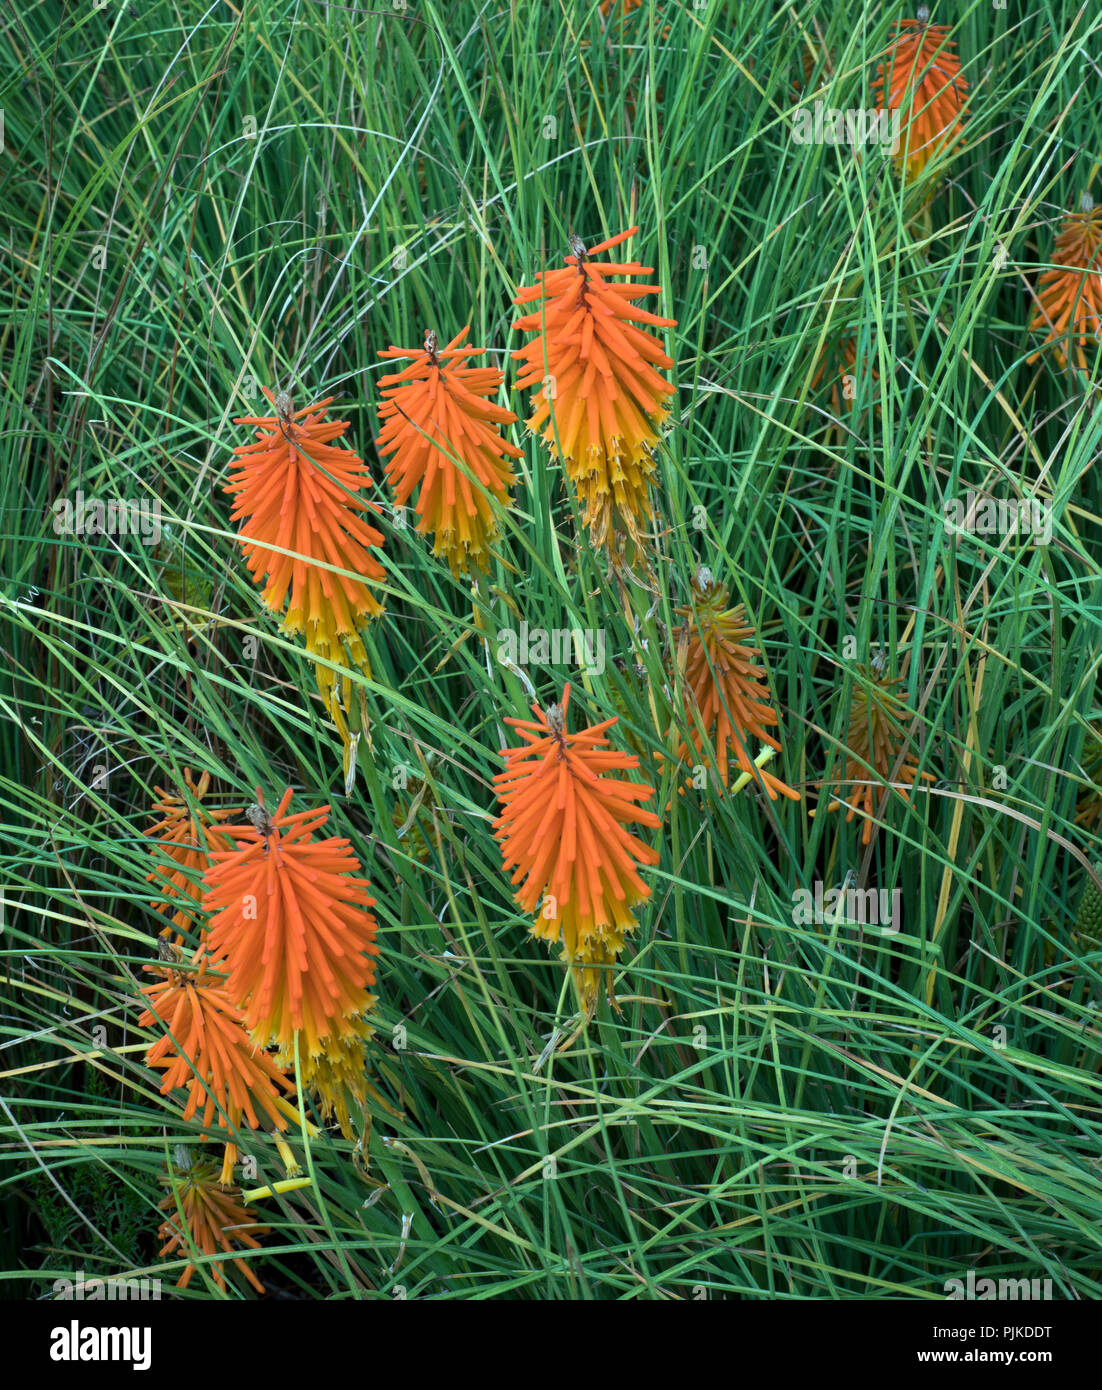 Kniphofia 'Bressingham Comet' Stock Photo